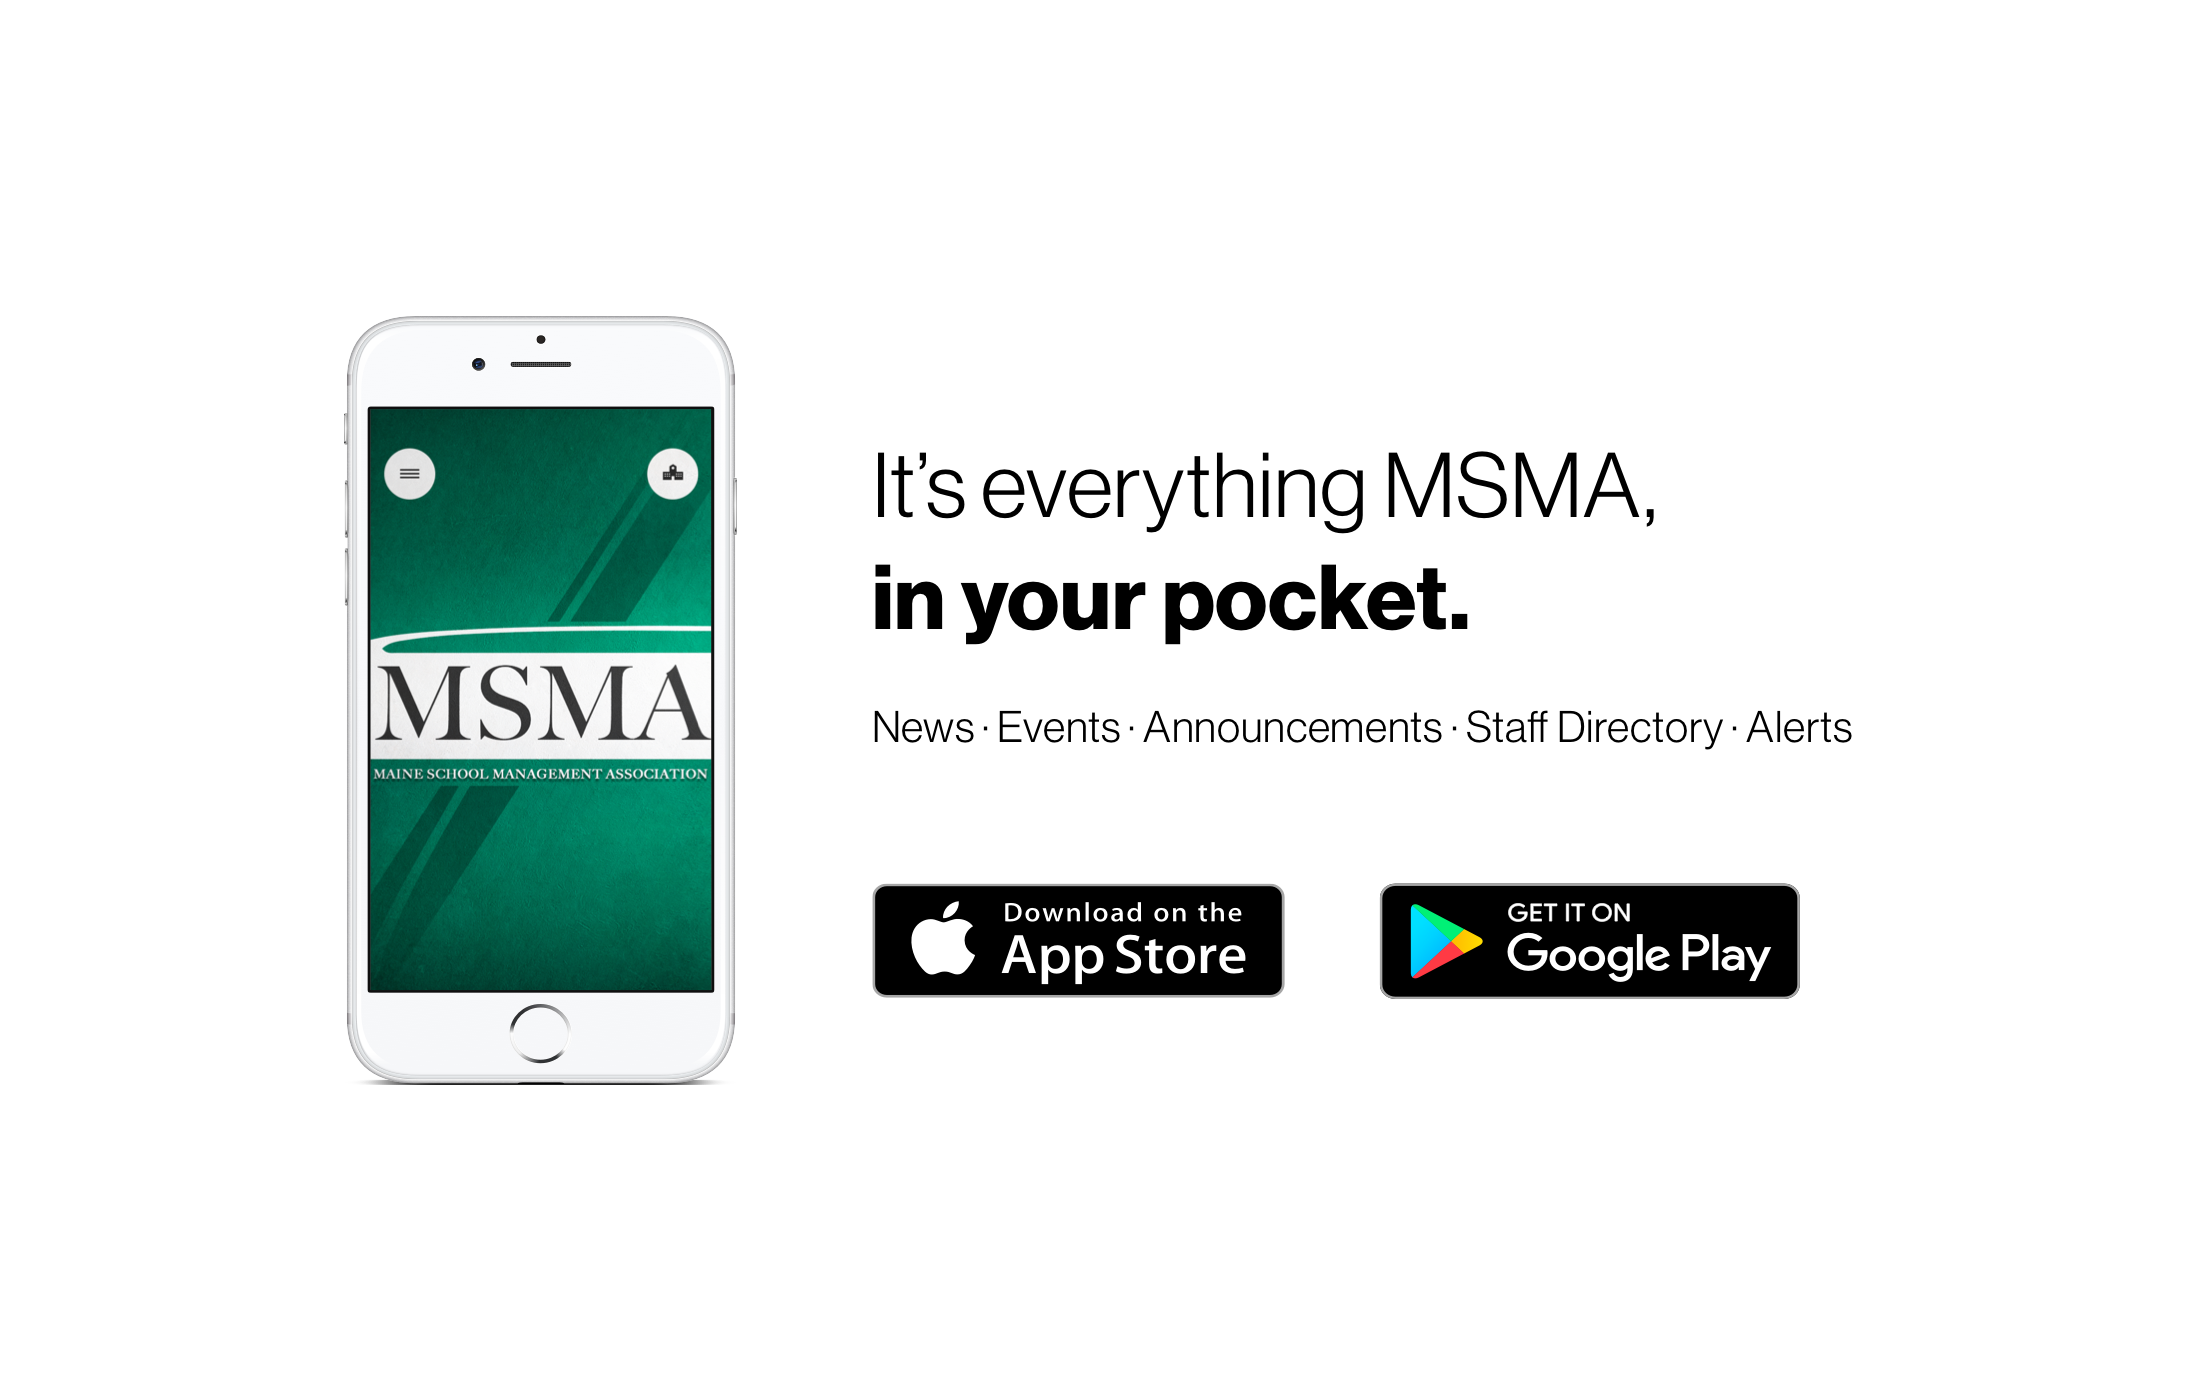 MSMA has gone mobile - download the App today!